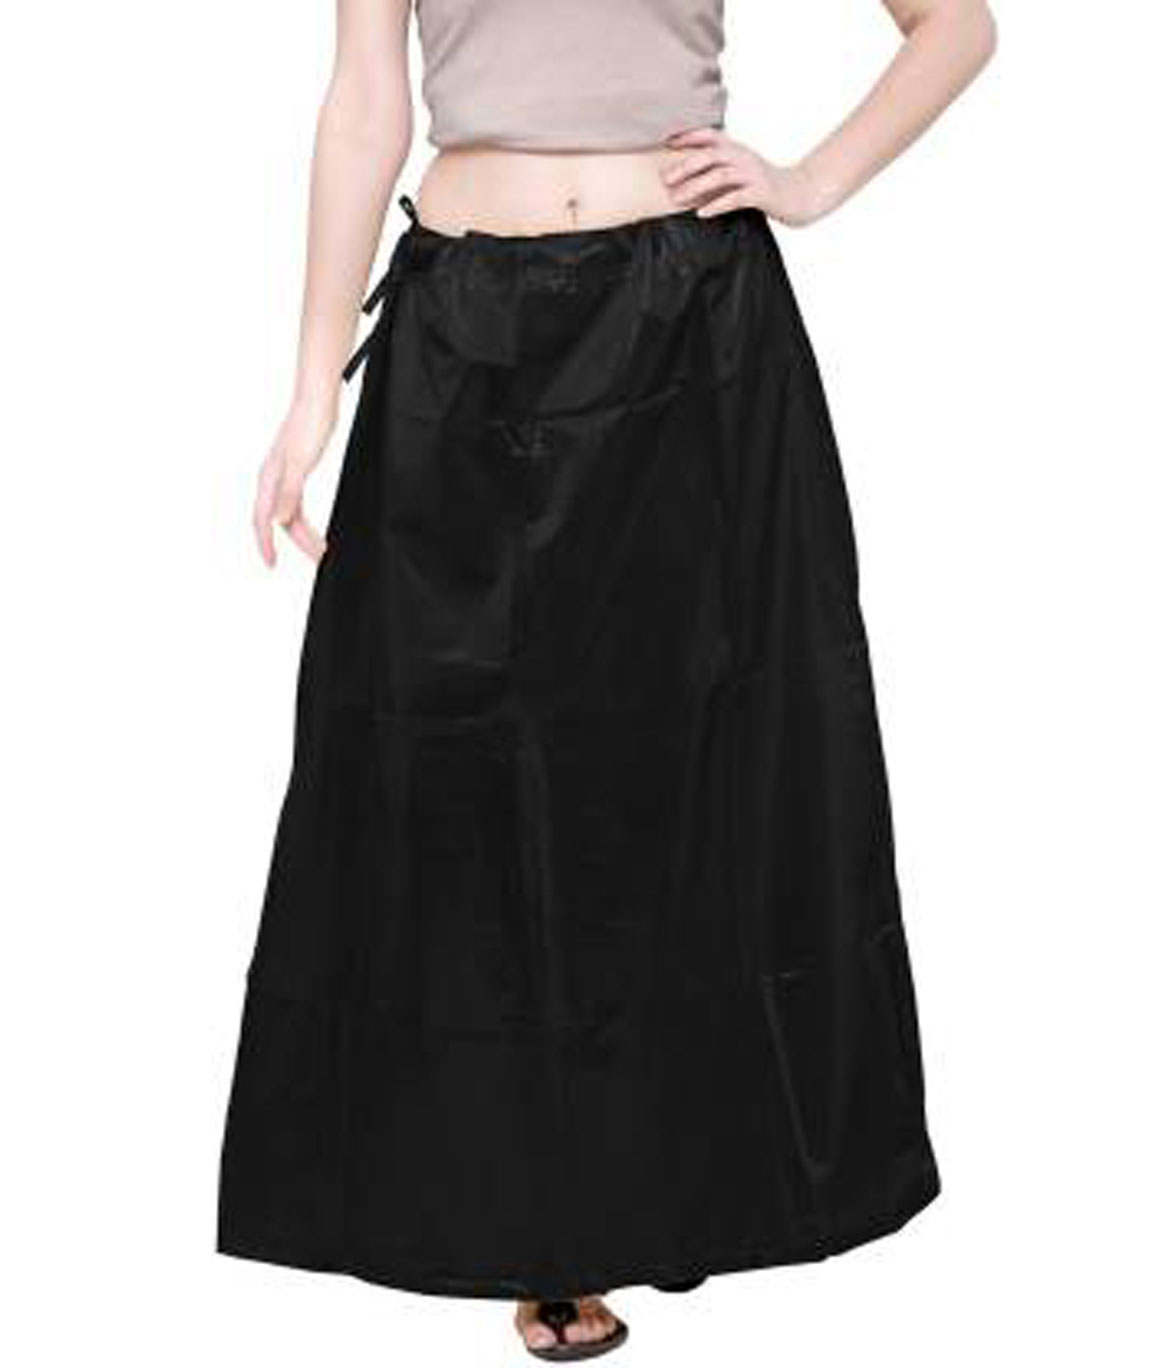 AM-BLKLSHIMMERPTC50 LEATHER SHIMMER PETTICOAT (XL)